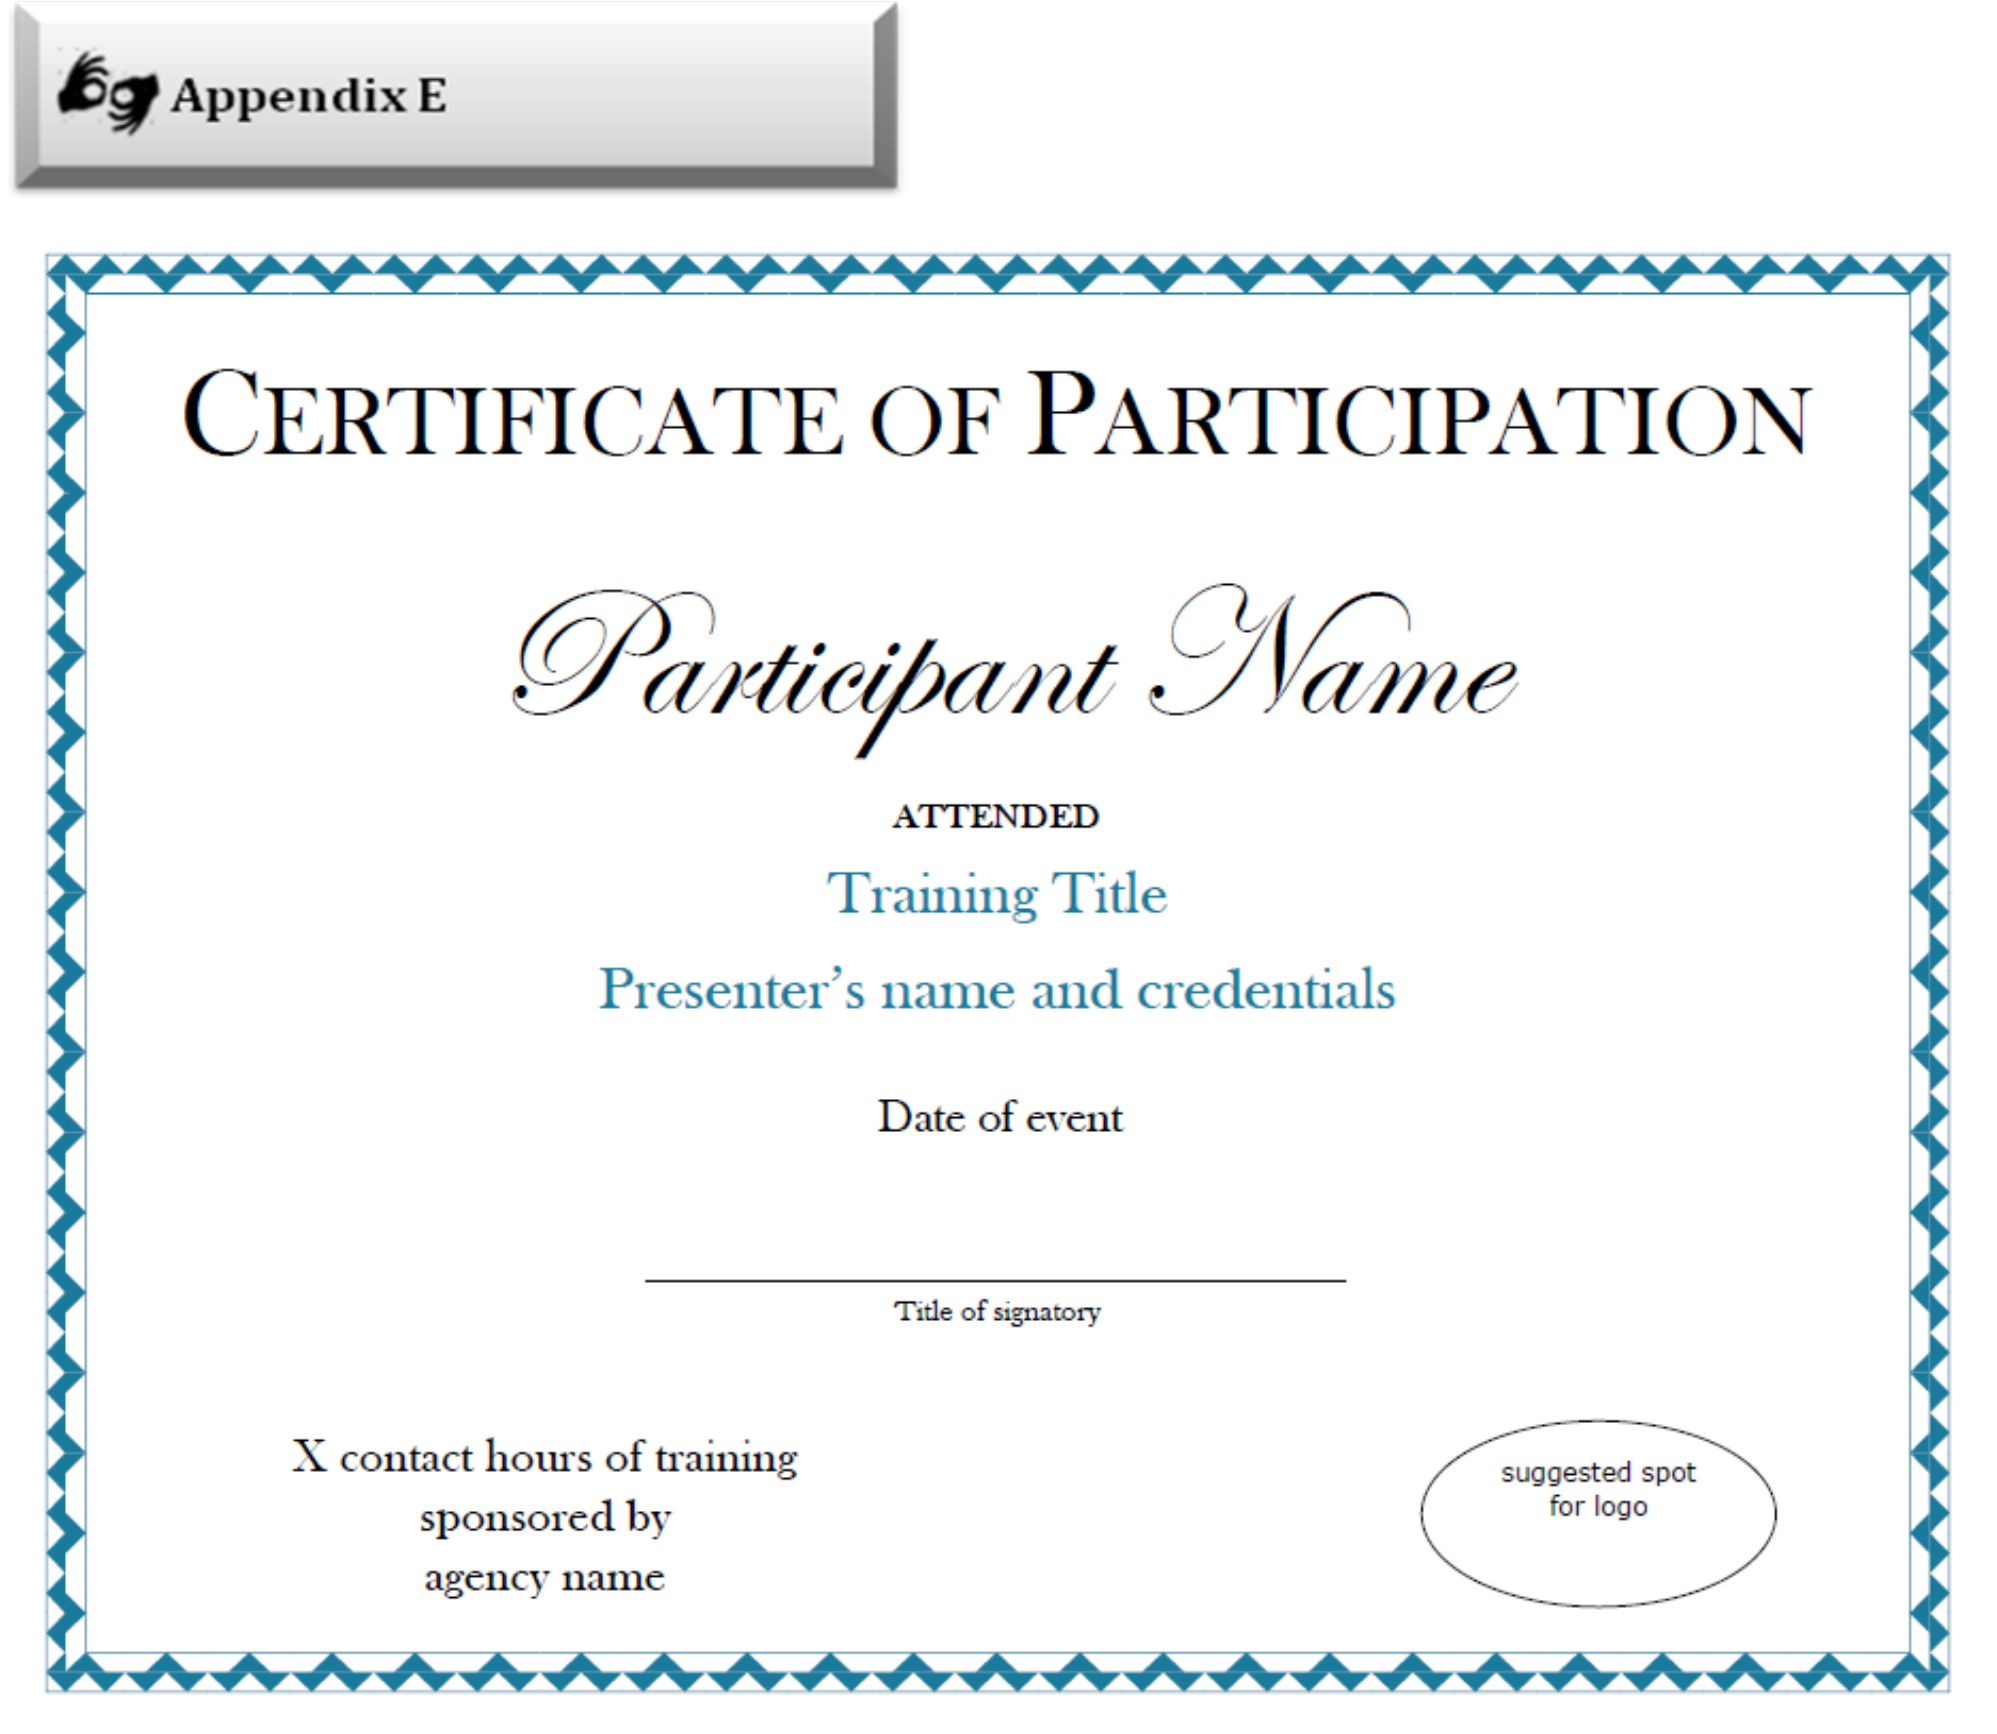 Certificate Of Participation Sample Free Download Intended For Sample Certificate Of Participation Template